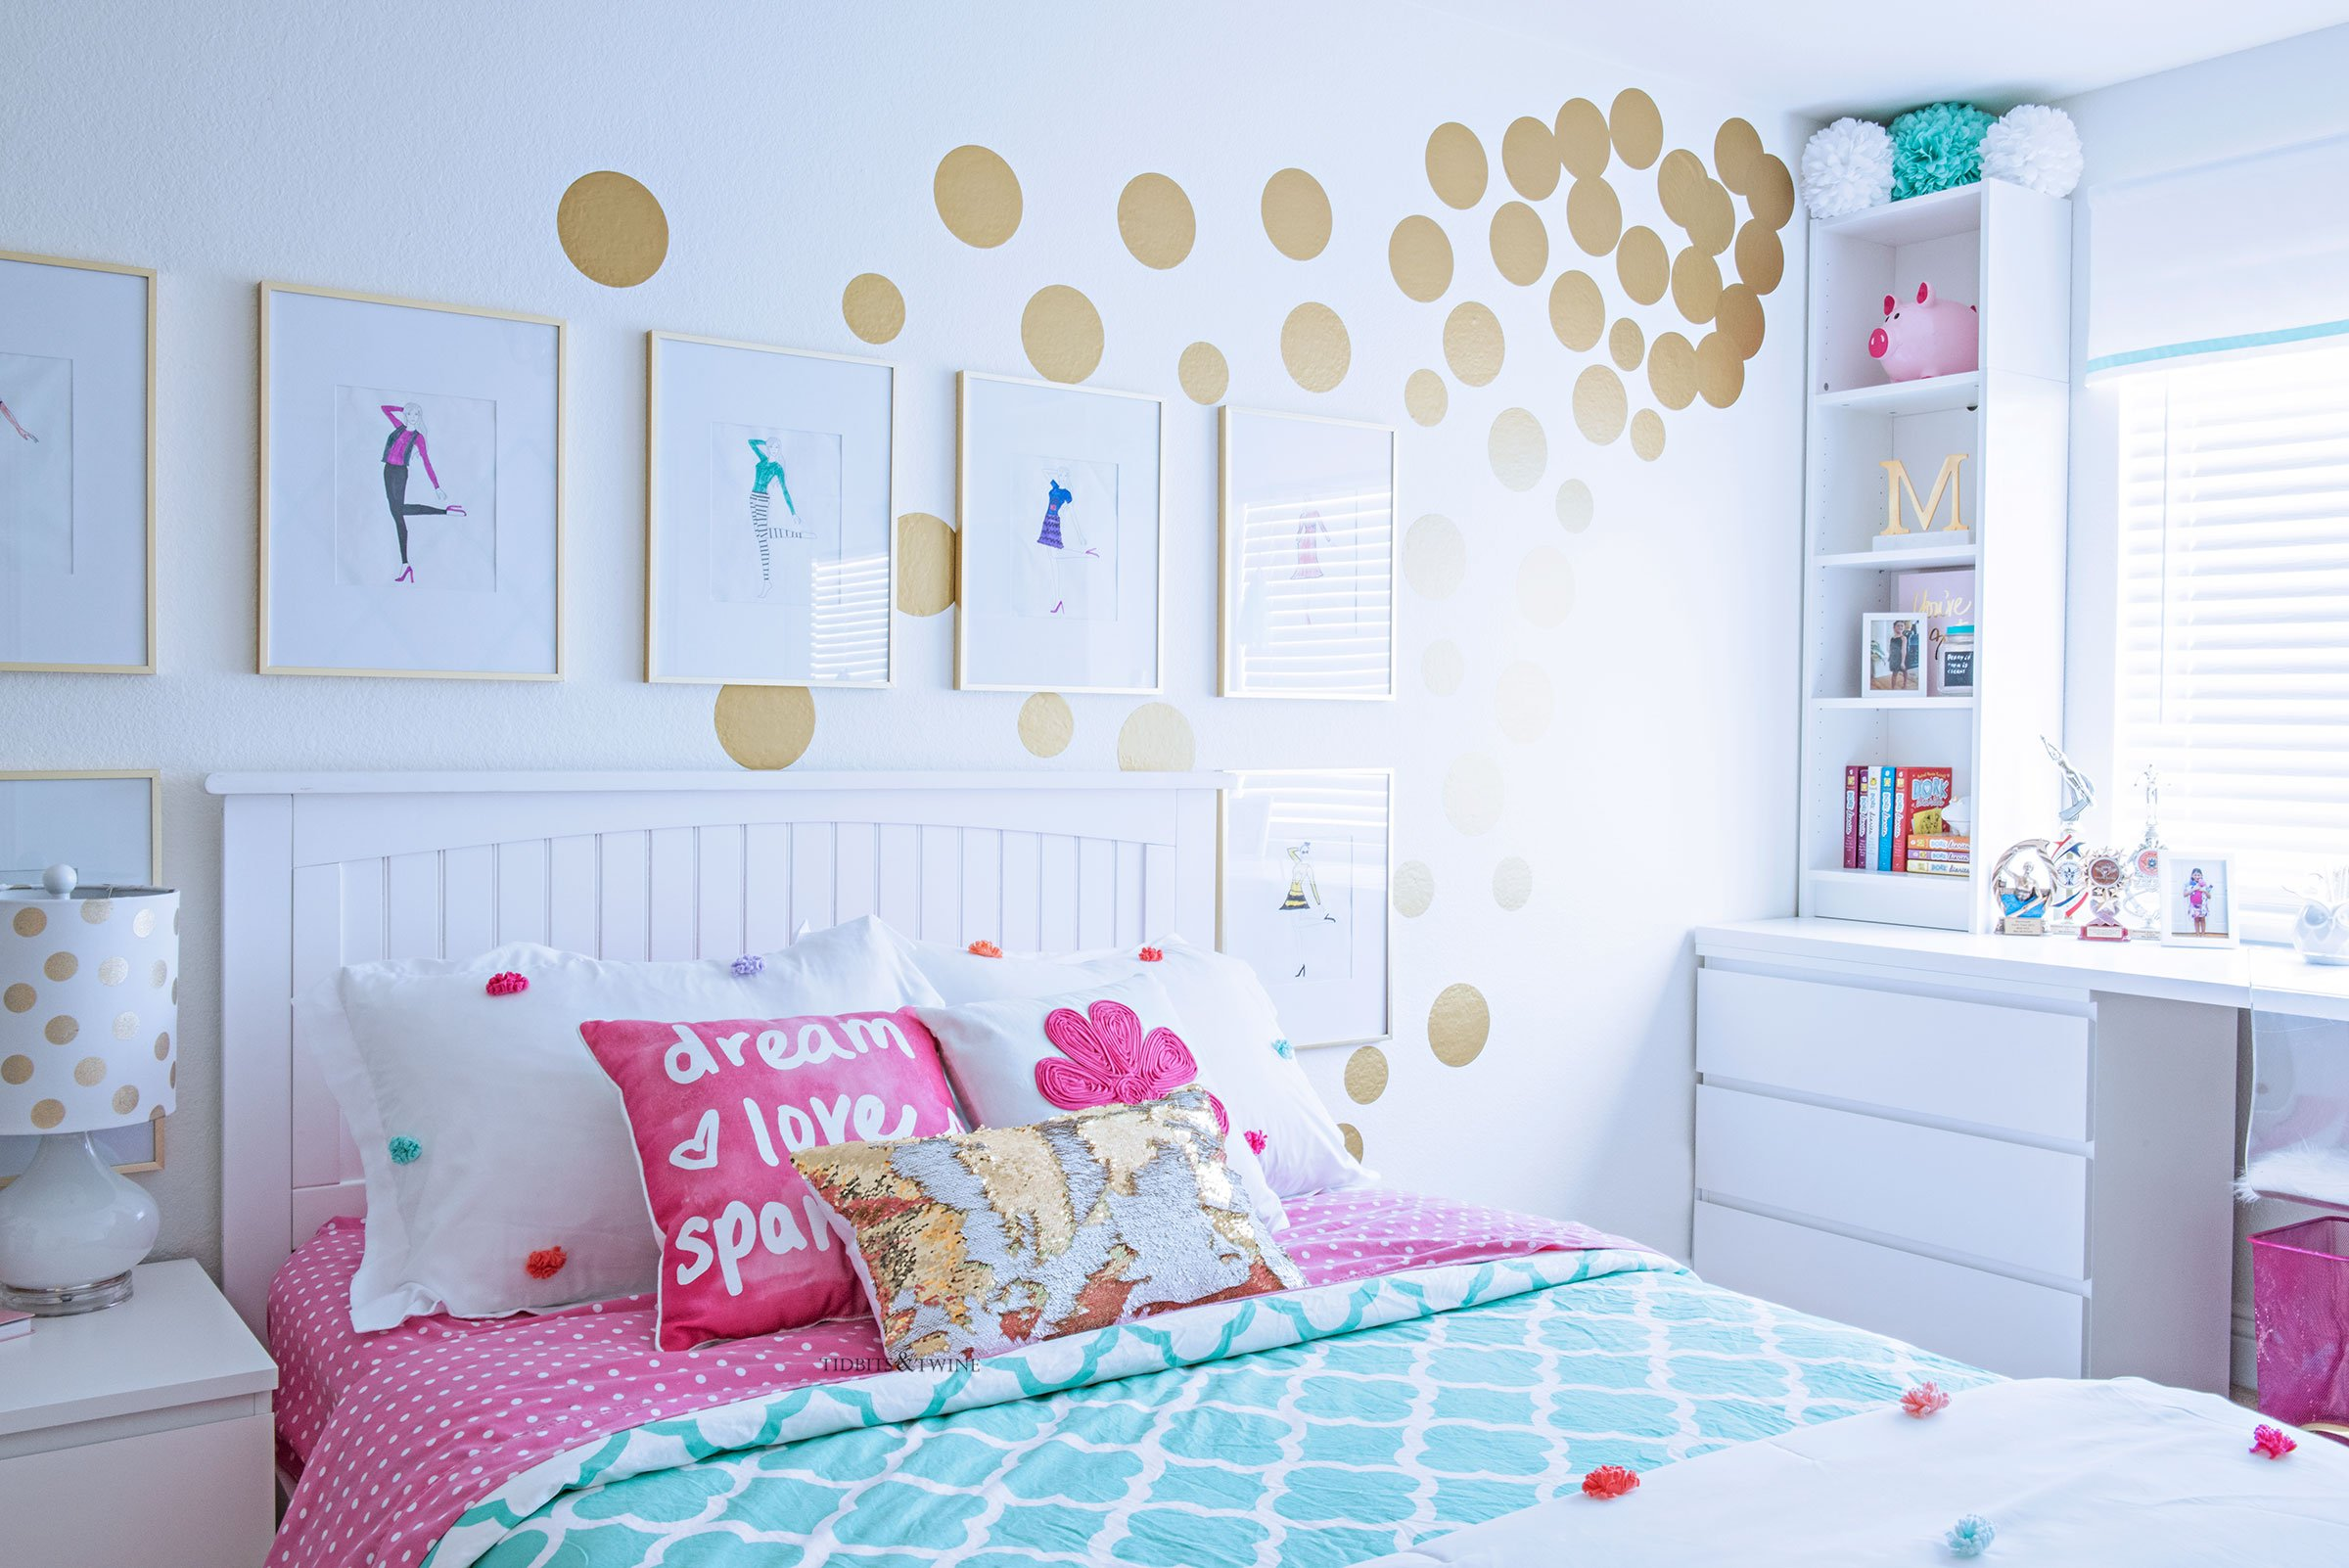 Room Makeover And A Box Bed: Tween Girl's Bedroom Makeover